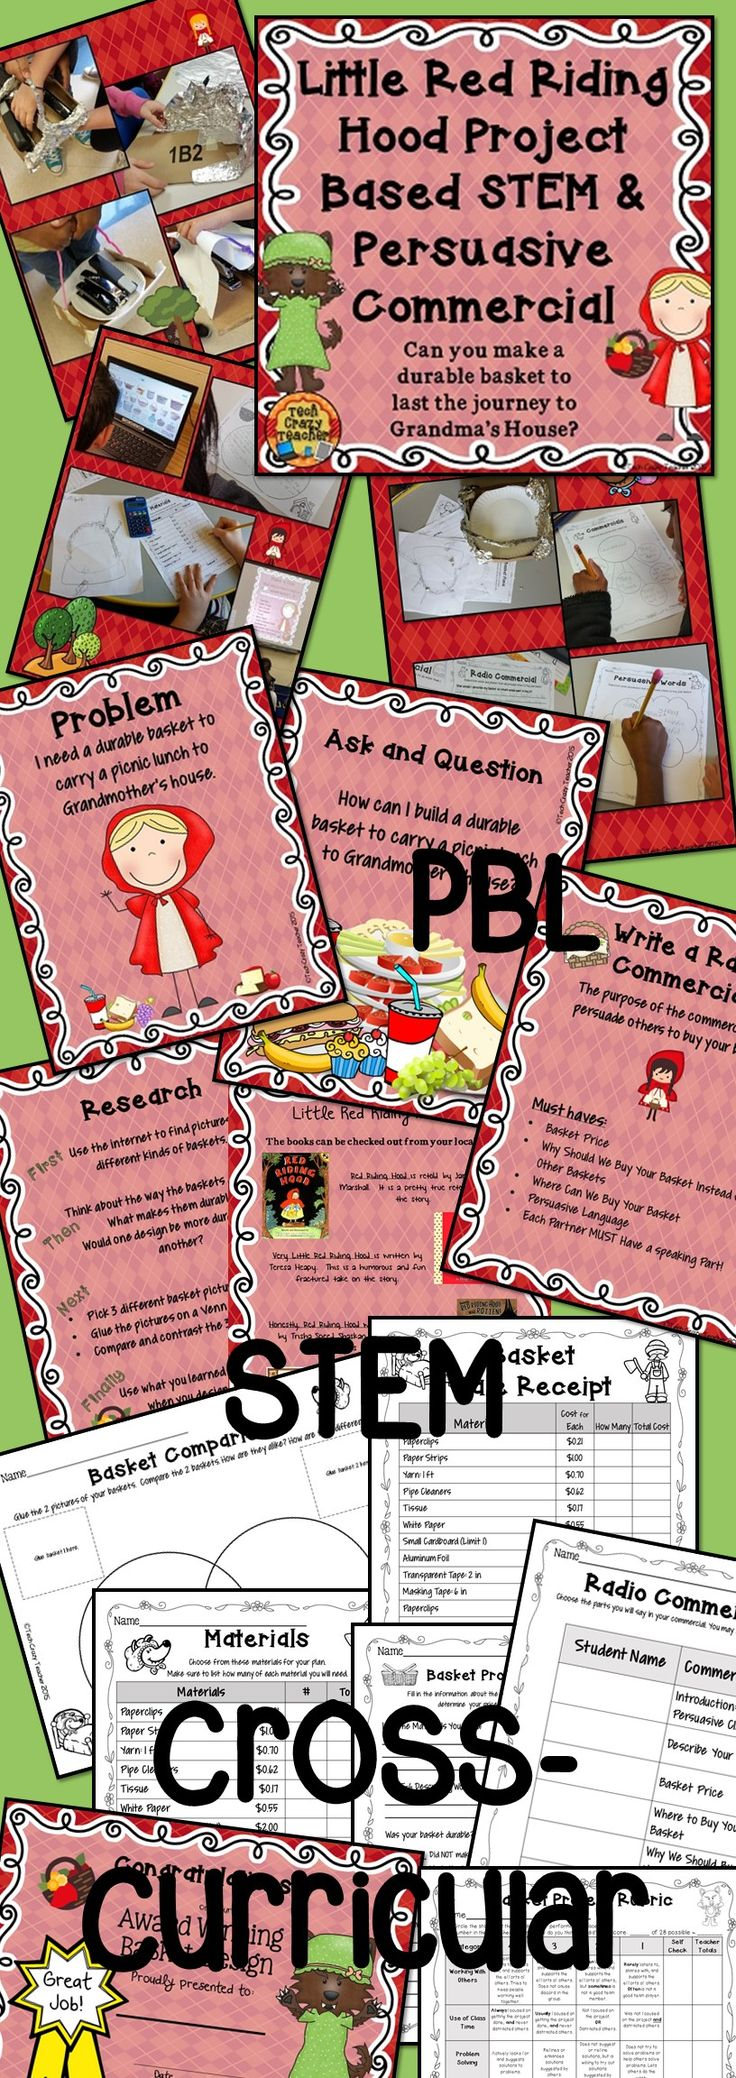 This Project Based Learning idea was a hit with my elementary students! They loved diving in to this project's STEM challenges! The PBL activities were inquiry based and extremely engaging. A great way to jump start science in your 21st Century classroom!